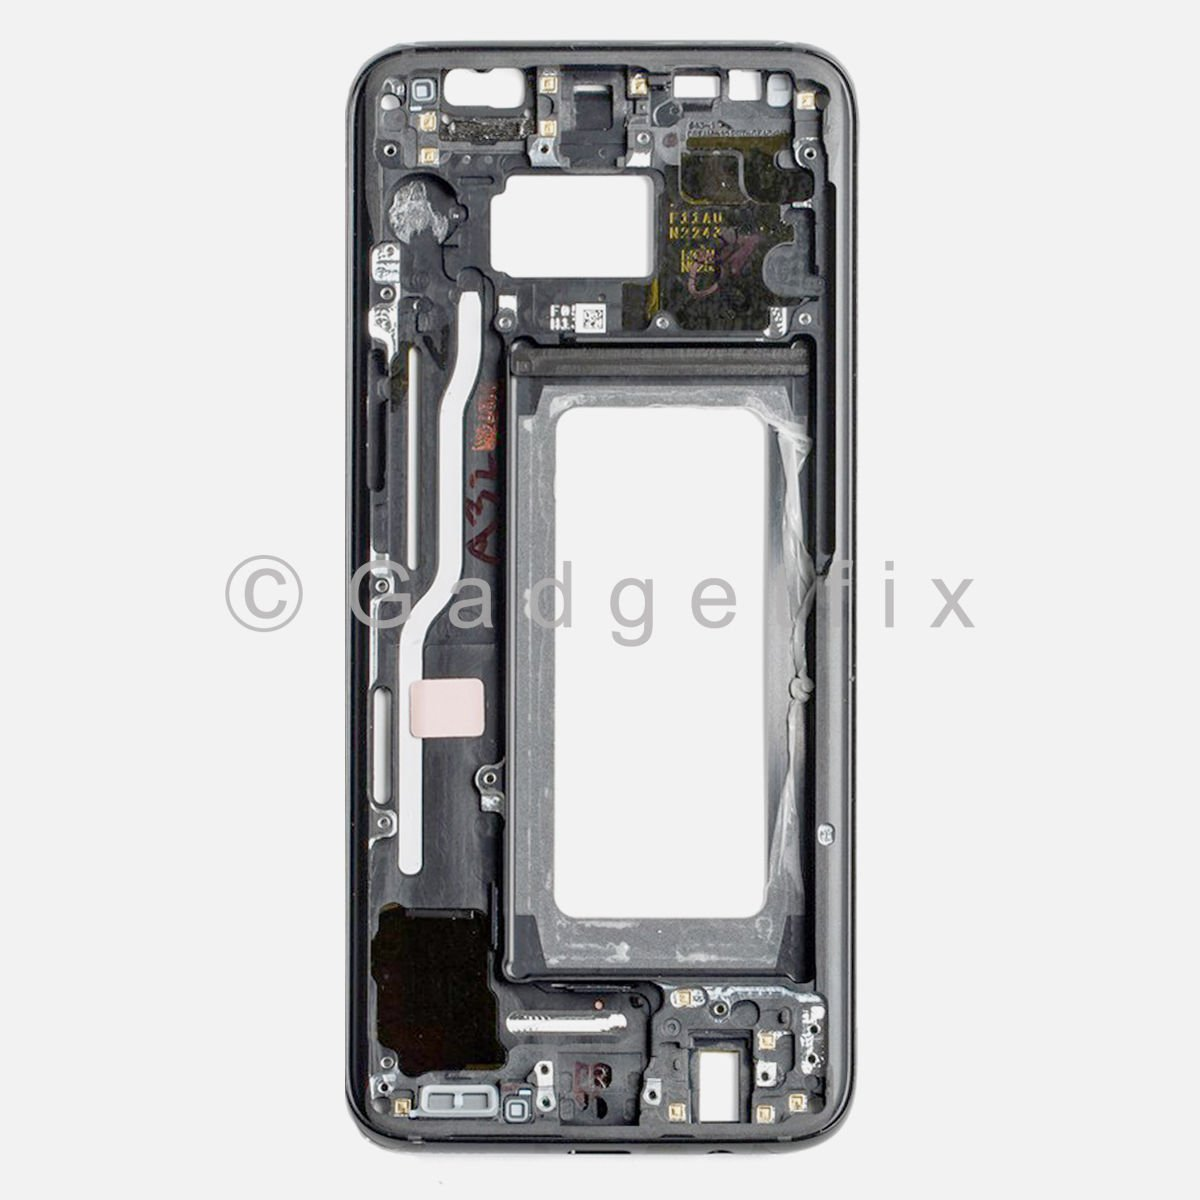 ... Middle Frame Bezel Mid Chassis Housing. Item: 232456566126 Condition: New Availability: In Stock. Blue Gray Silver Black